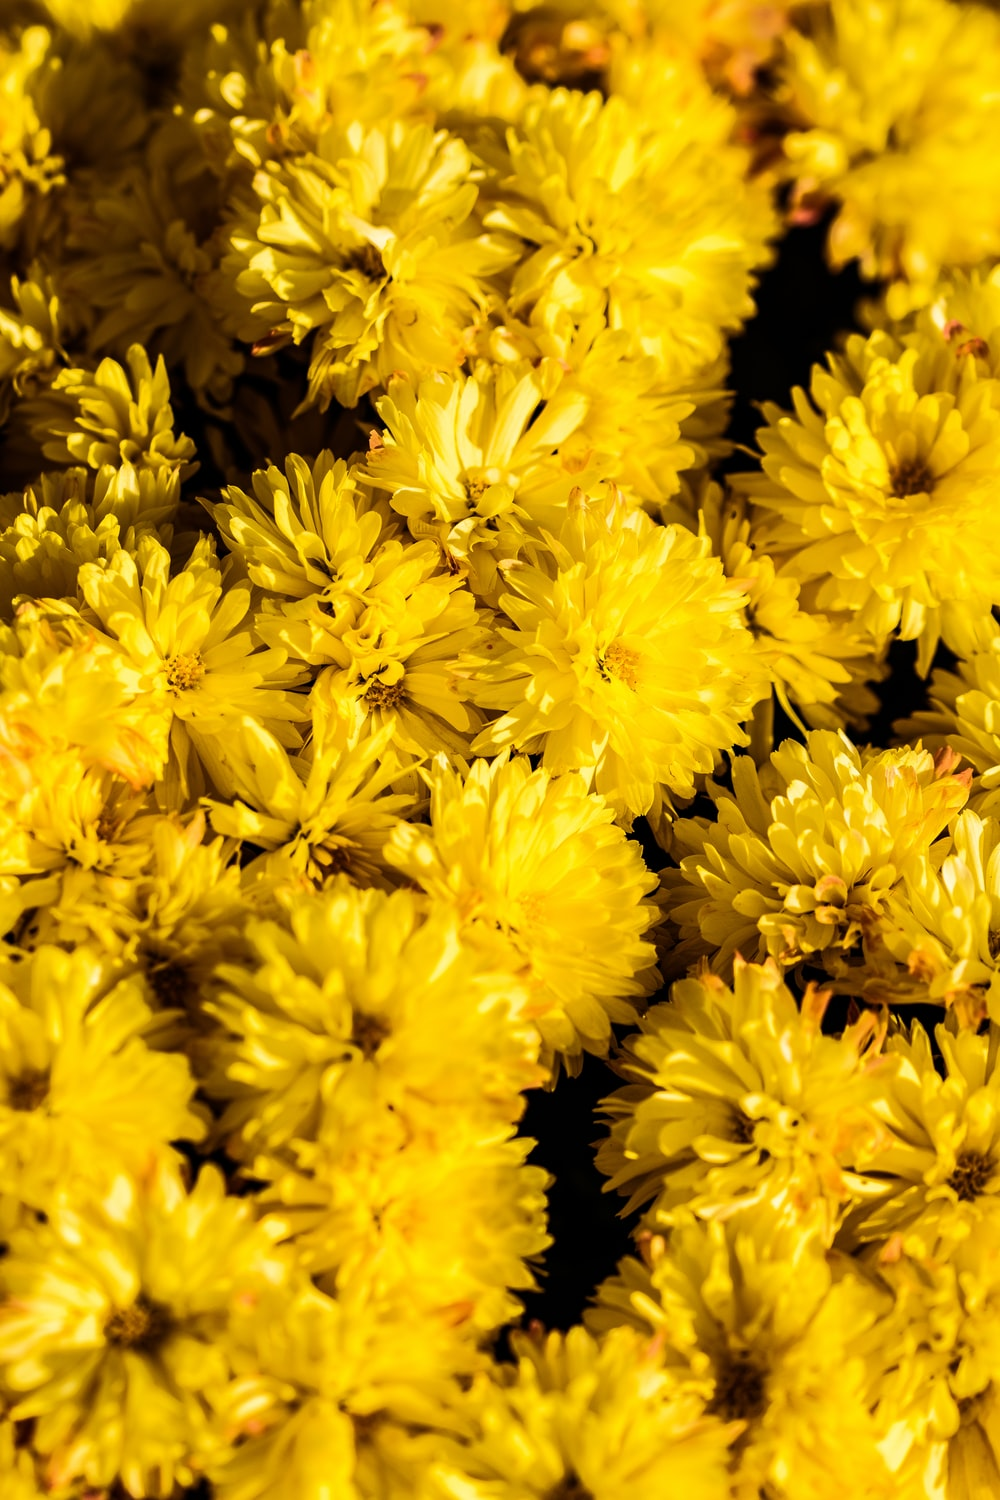 Nature Flower Yellow And Floral Hd Photo By Anthony Melone